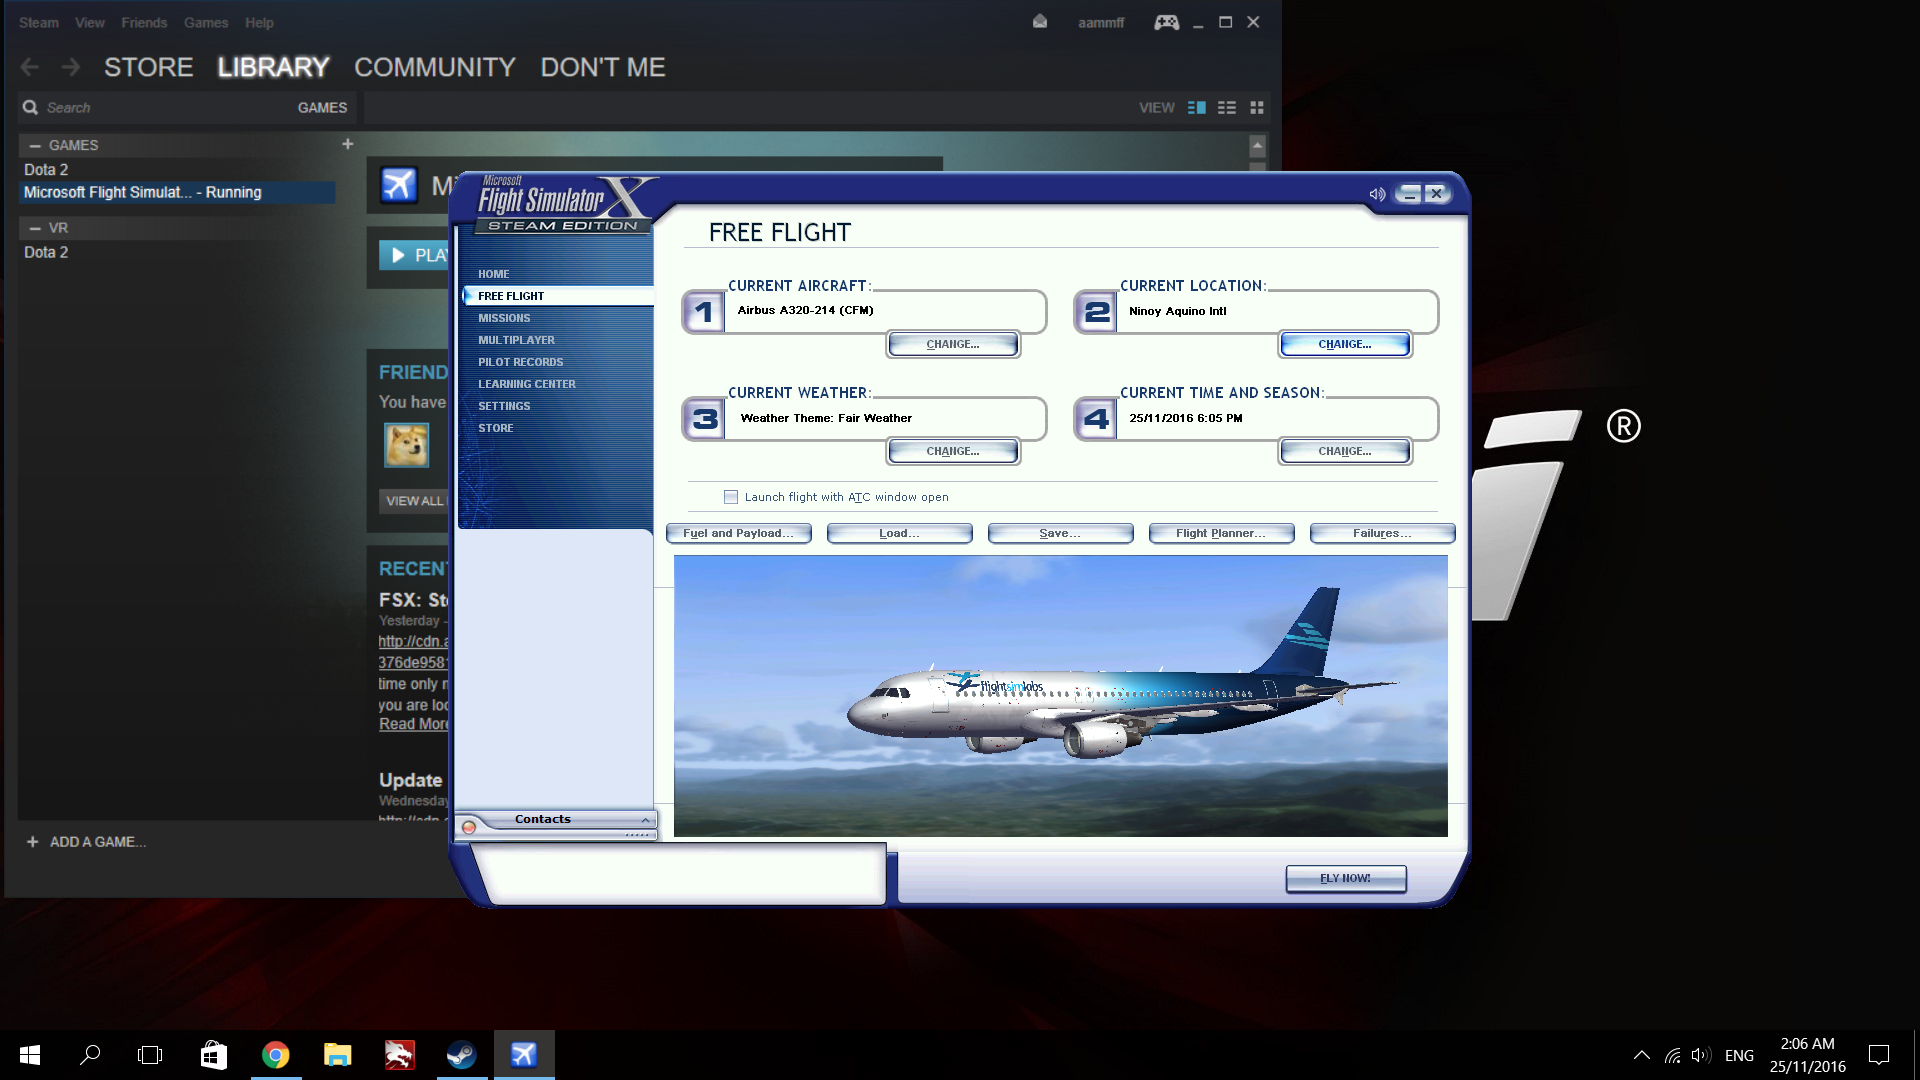 fsx has stopped working - Archive - Flight Sim Labs Forums